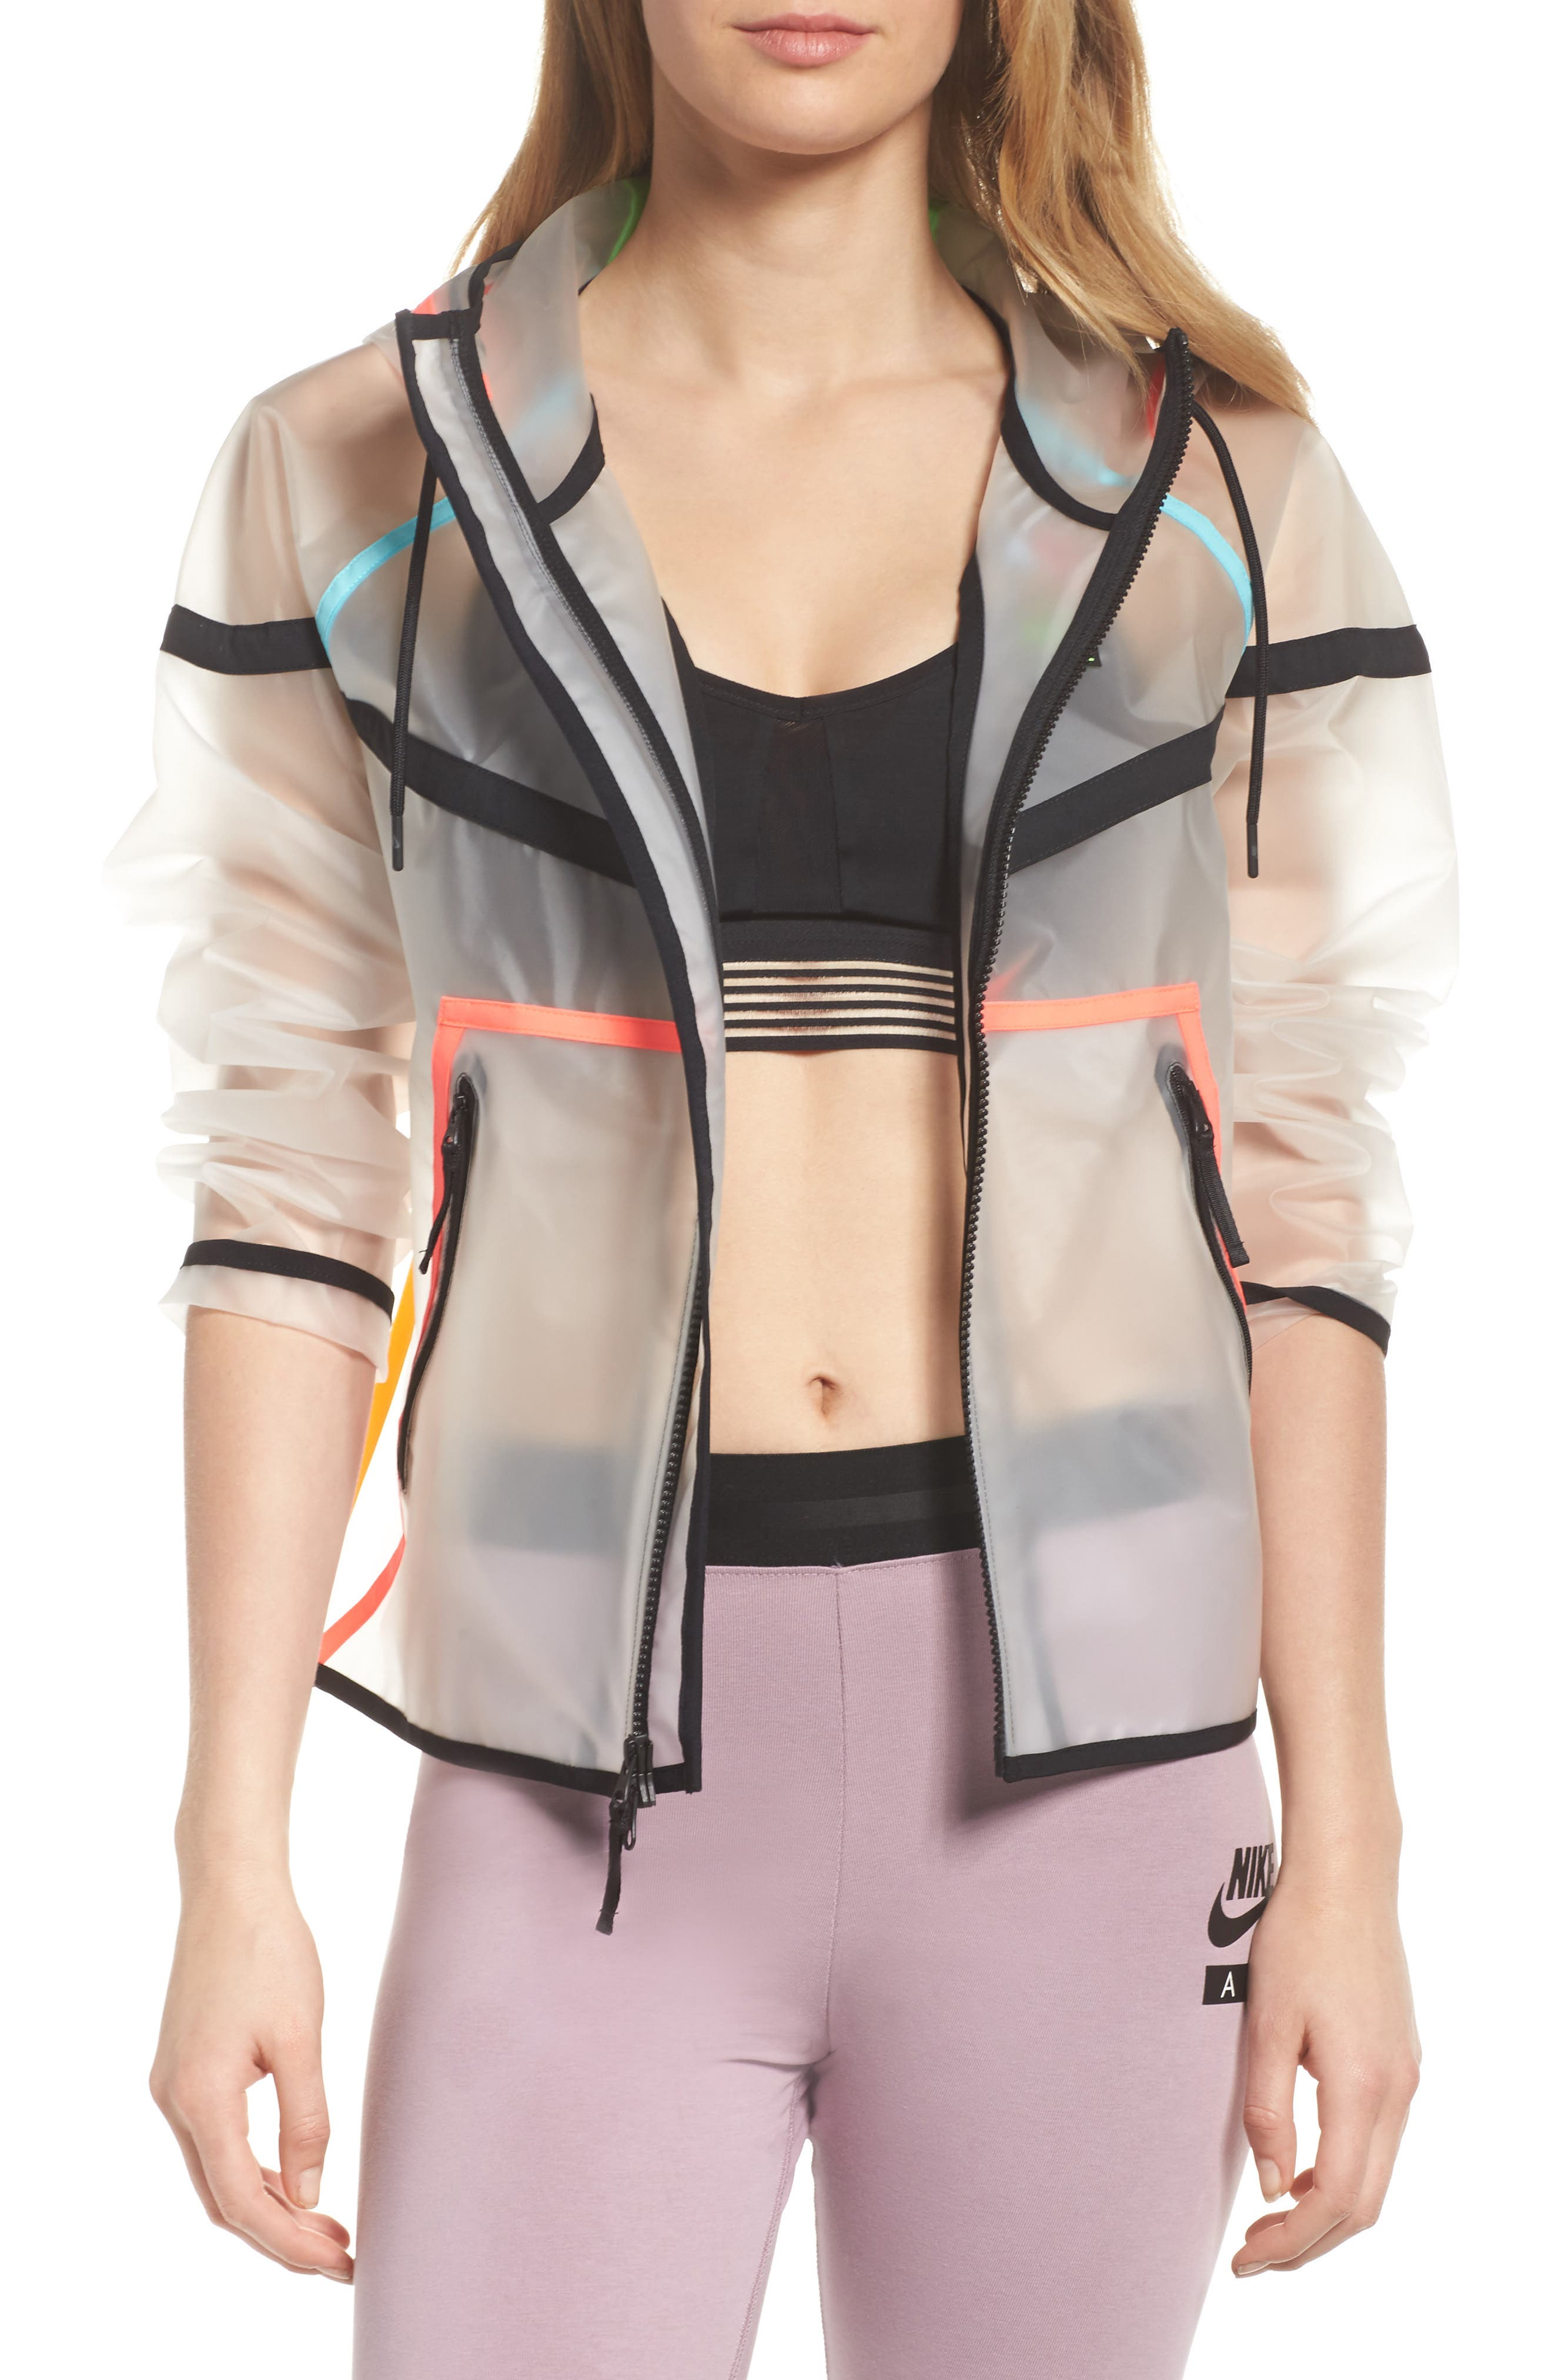 NikeLab Collection Ghost Windrunner Women's Jacket,                             Main thumbnail 1, color,                             100